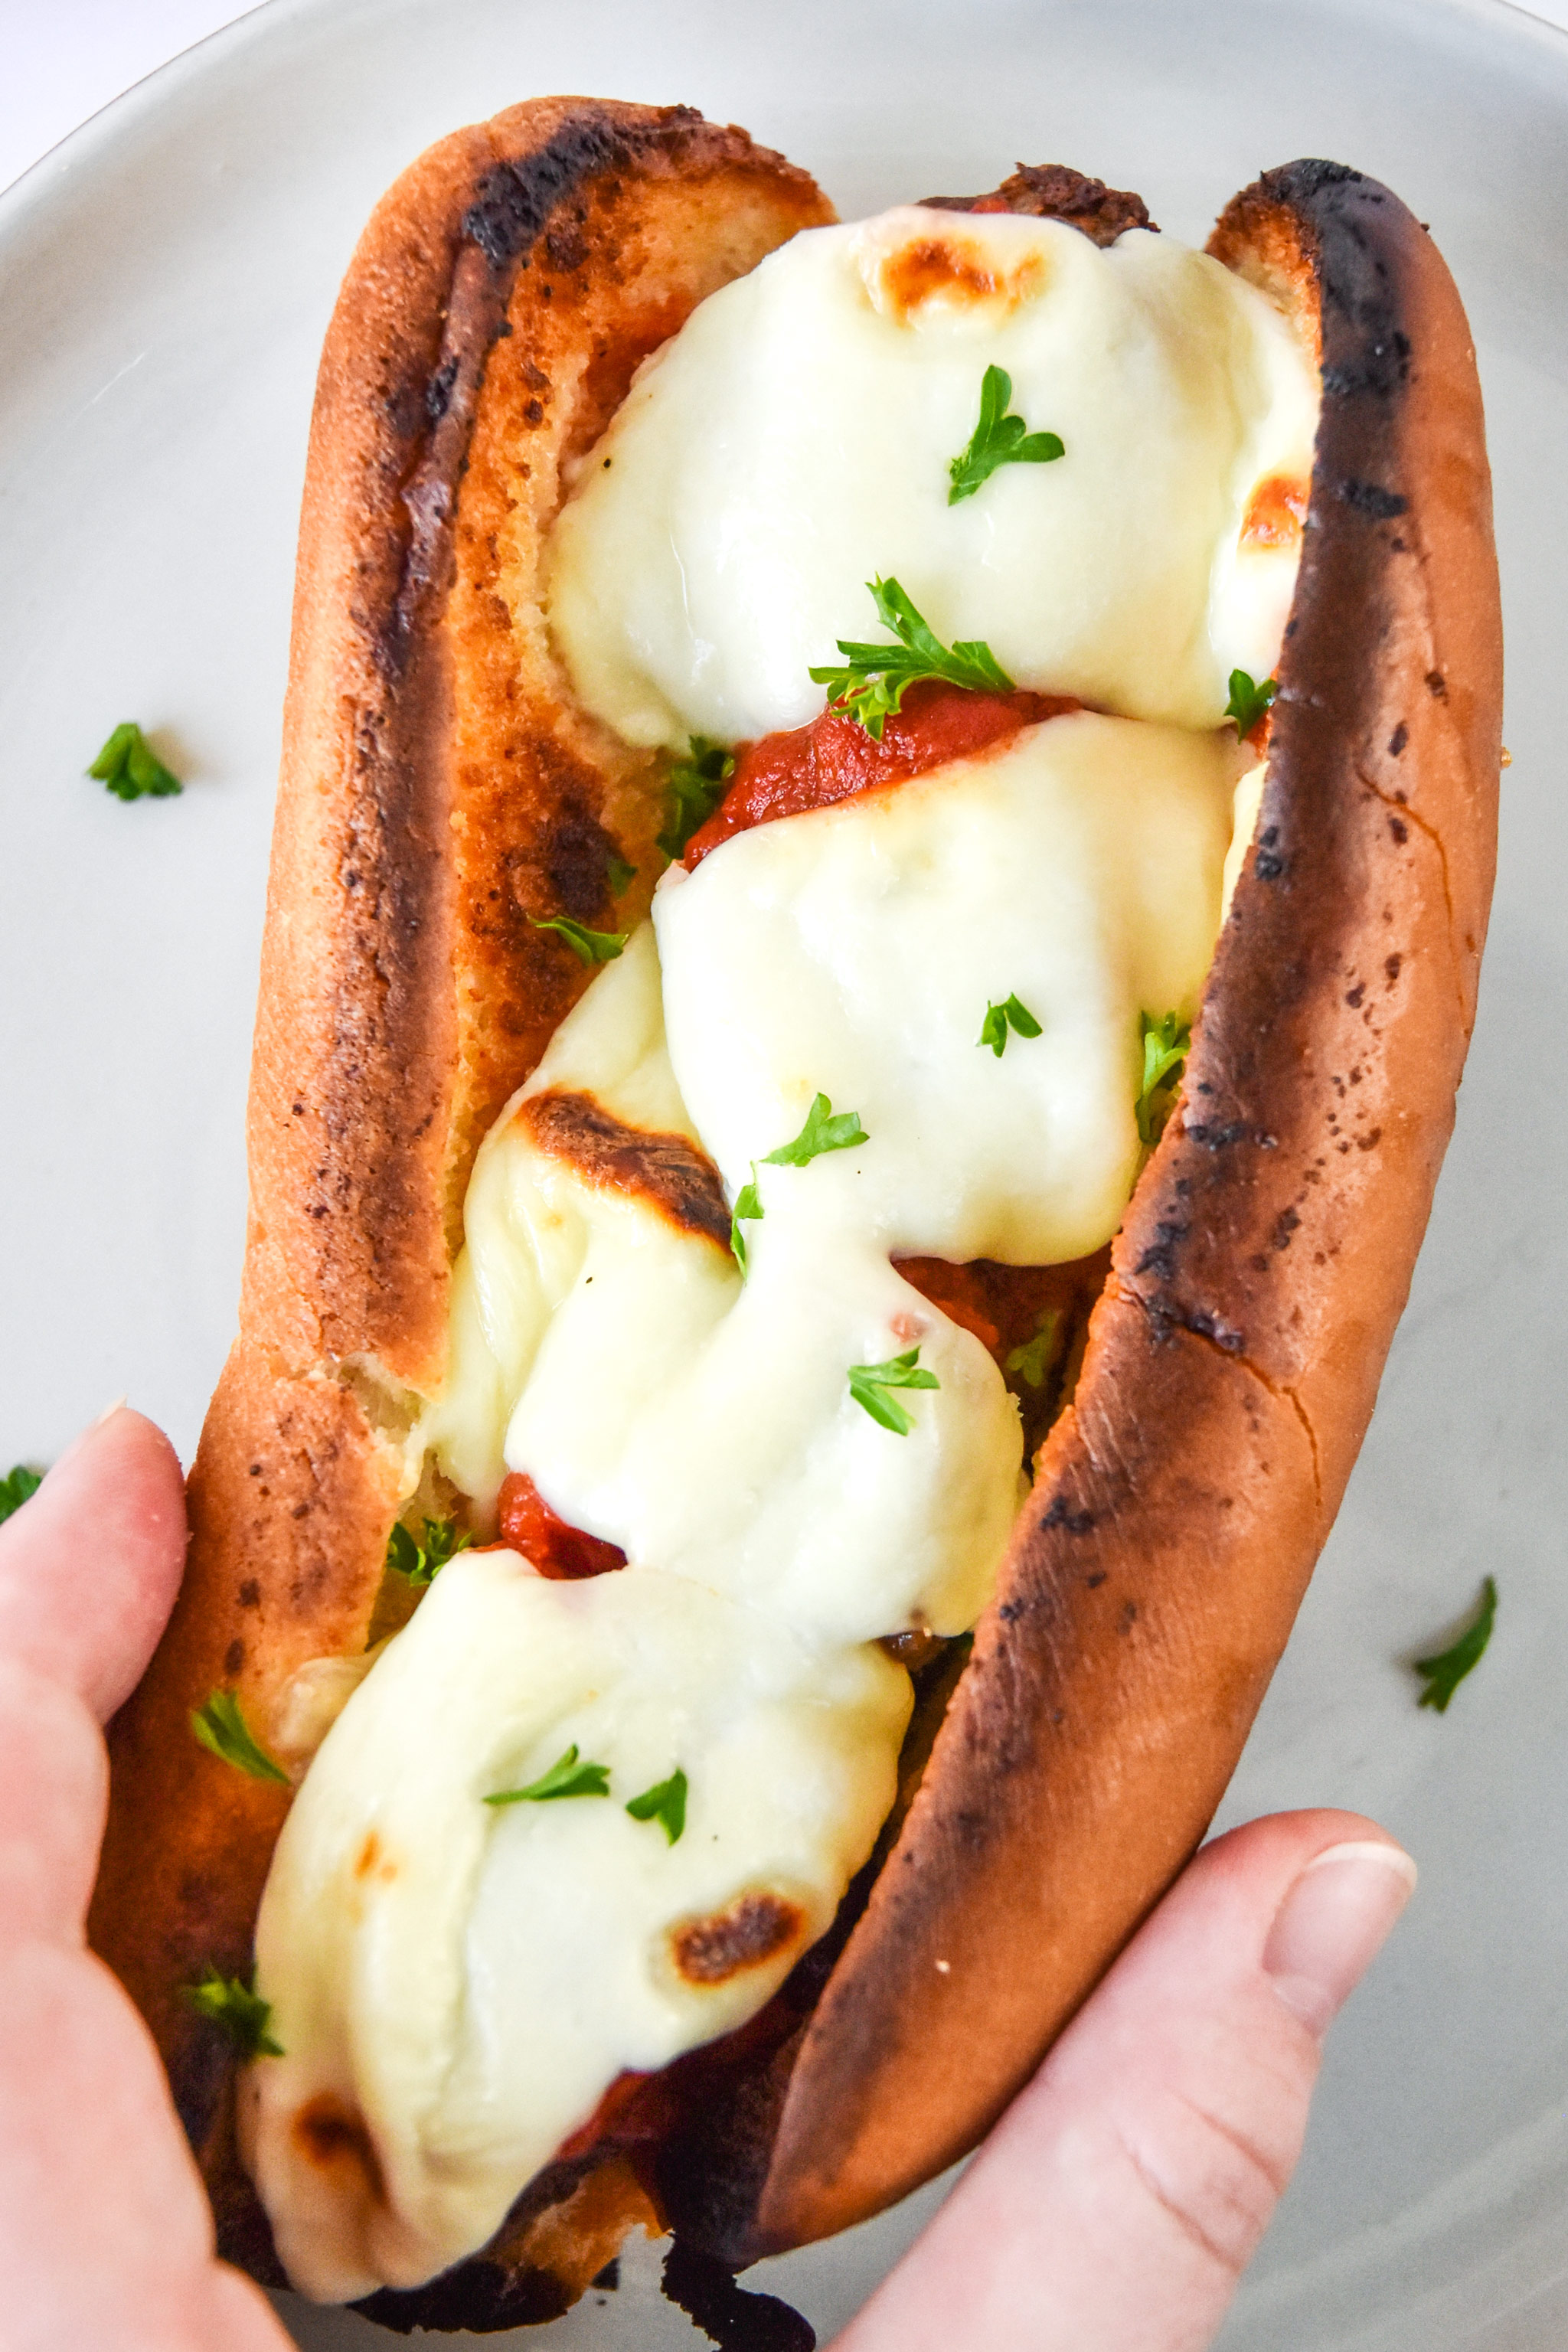 meatball sub sandwich with fresh mozzarella in hand.